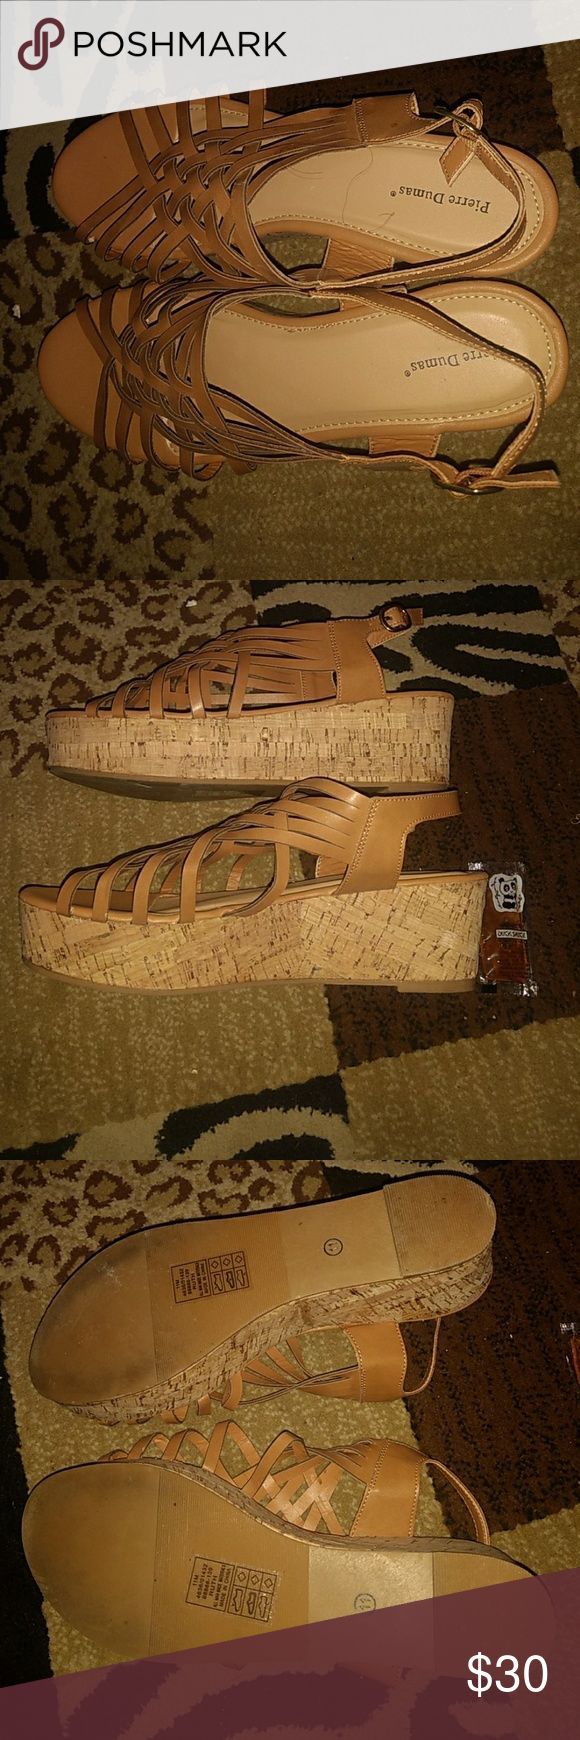 Tan wedge sandals Strappy cork wedge sandals. Worn in home one time. They were too big for me. I've recently gone down in shoe size due to weight loss. Crazy, right? These are heavy in my opinion but if they fit right they probably won't be. I pictured a spot that might be a flaw but idk. Could just be from wearing one time. No box for this pair. Must have tossed it. Pierre Dumas Shoes Sandals